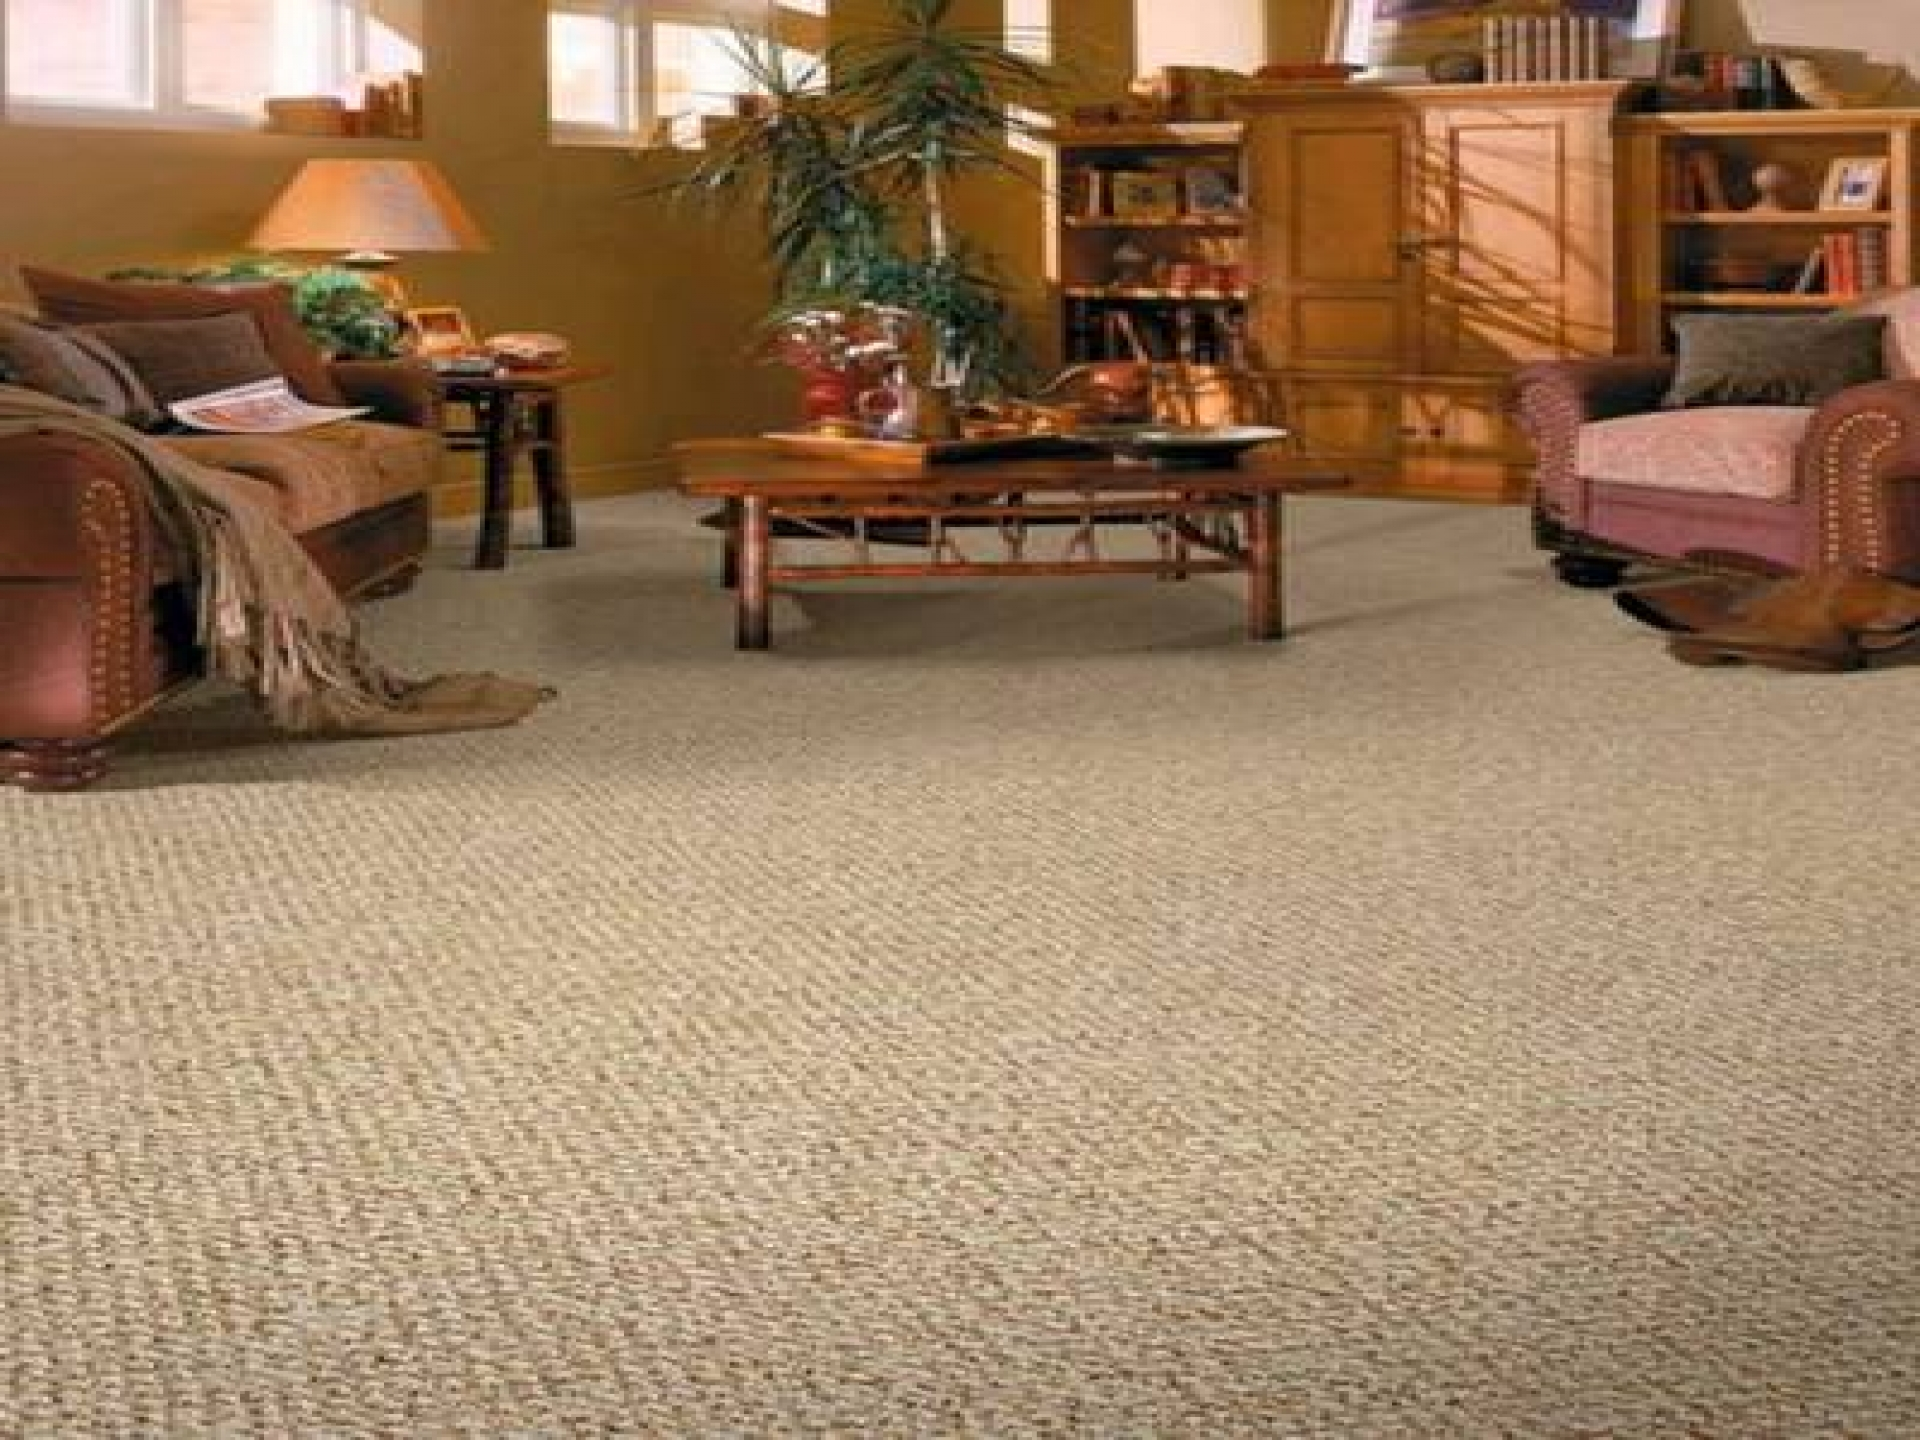 carpet for home living room carpet choice for your home - furnitureanddecors.com/decor CSXCZUW